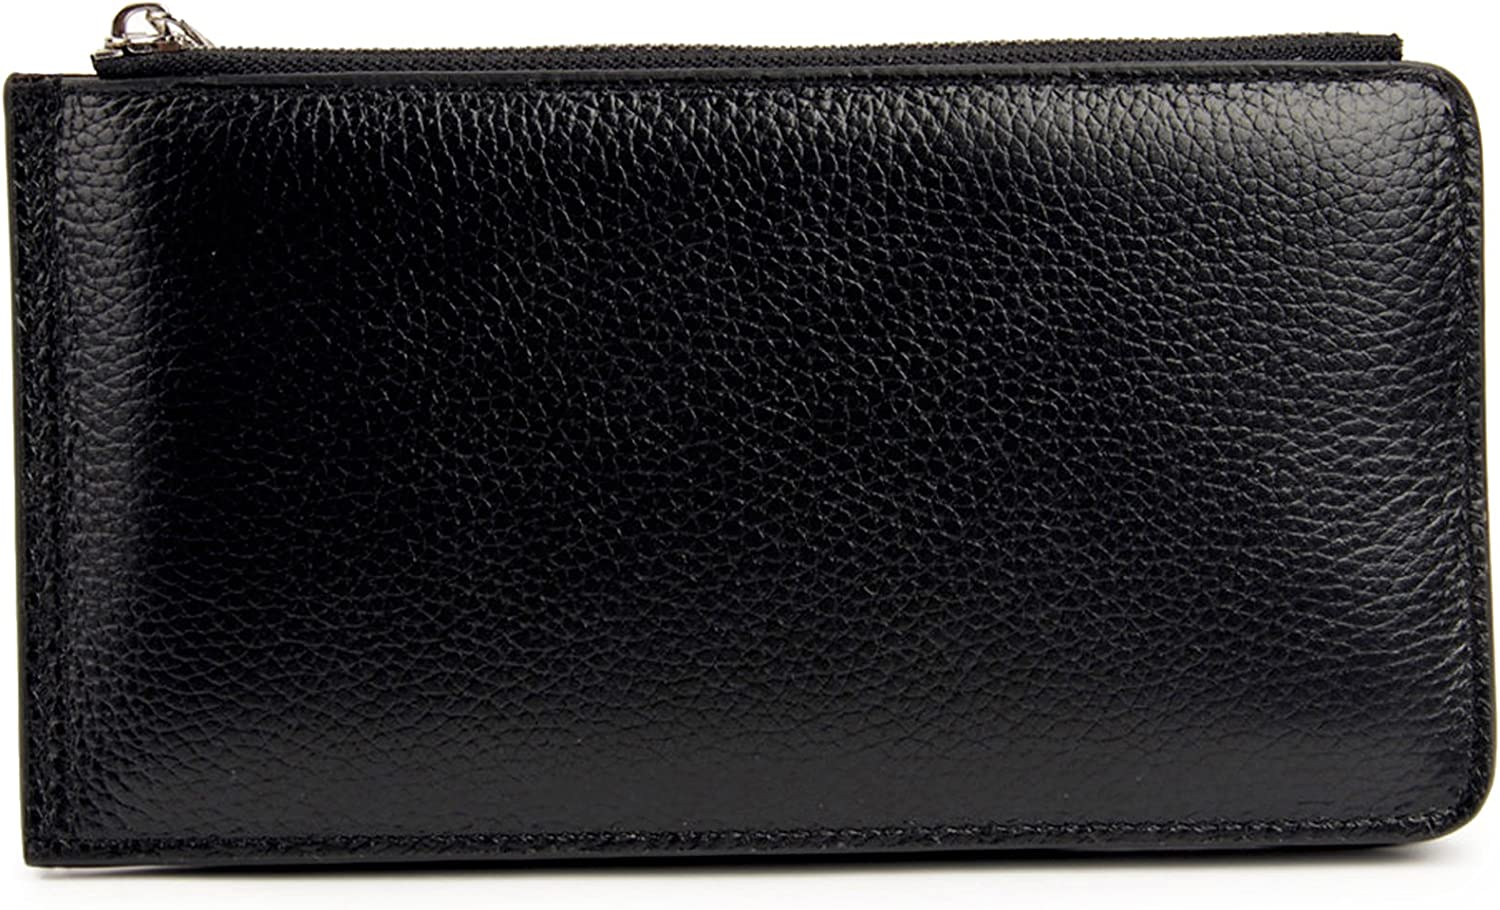 Women's RFID Blocking Leather Card Organizer Wallet with Phone Zipper Pocket (Black)